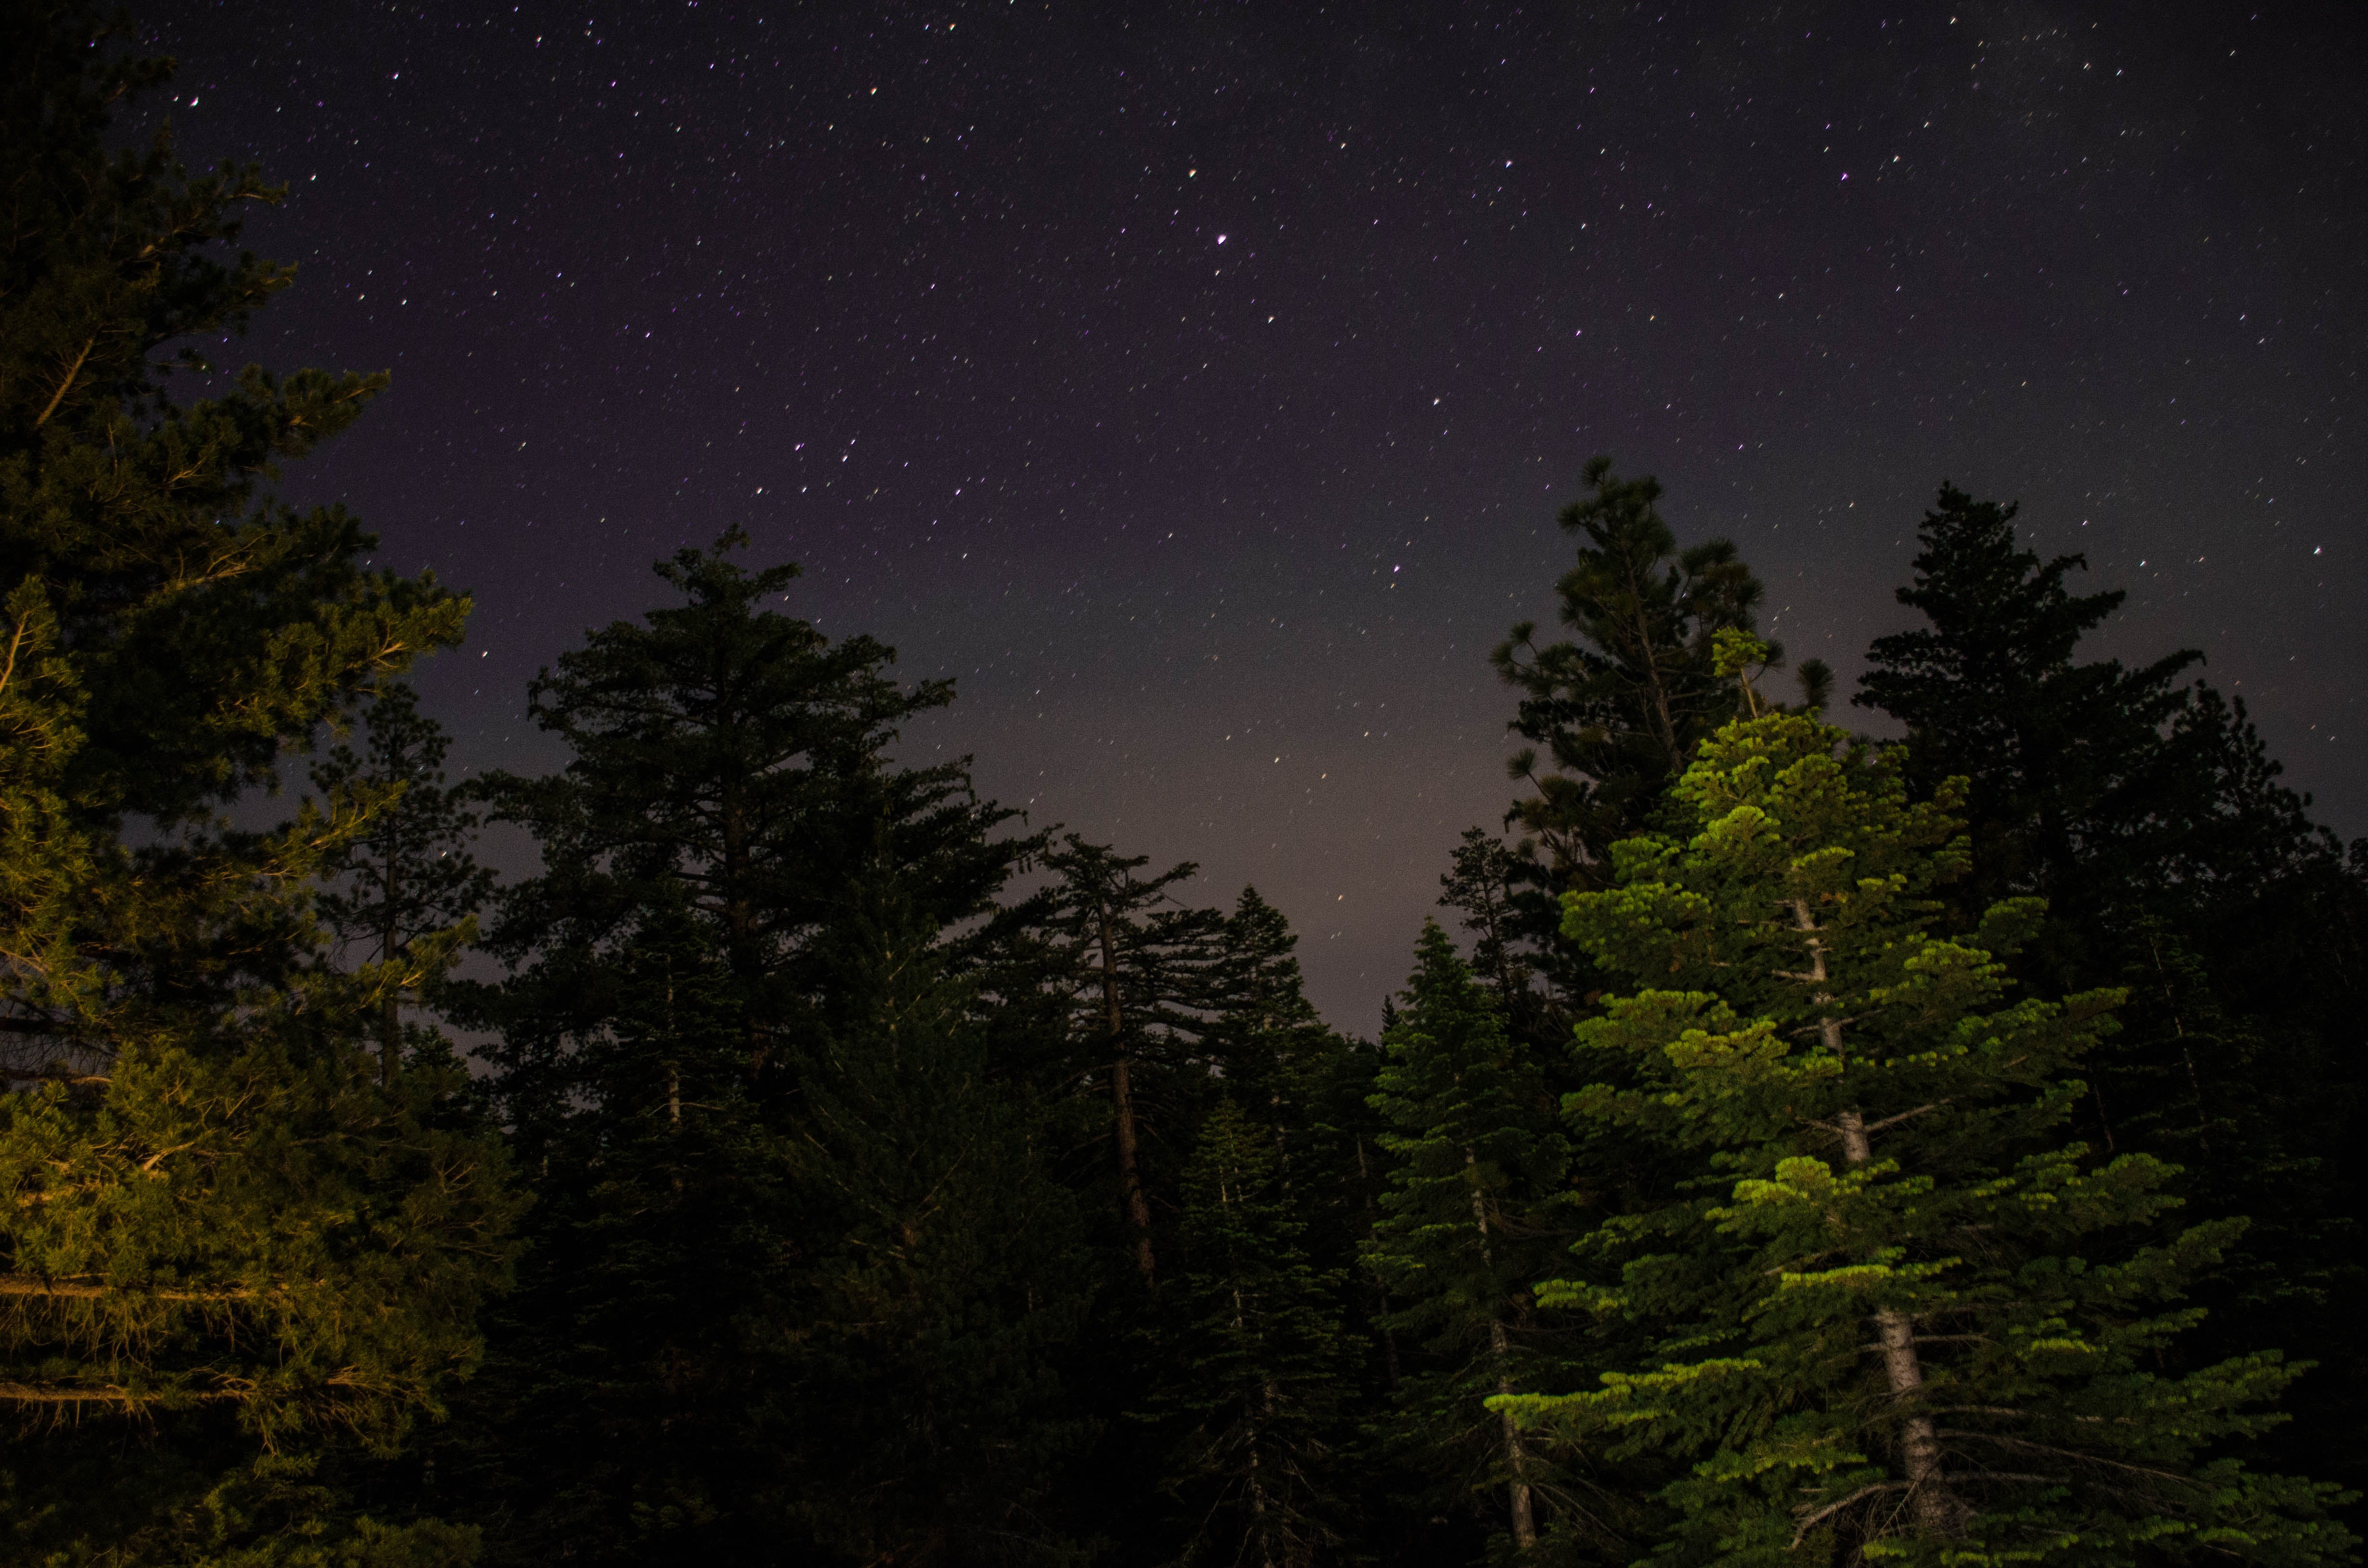 Royalty free images of nature, sky, night, forest